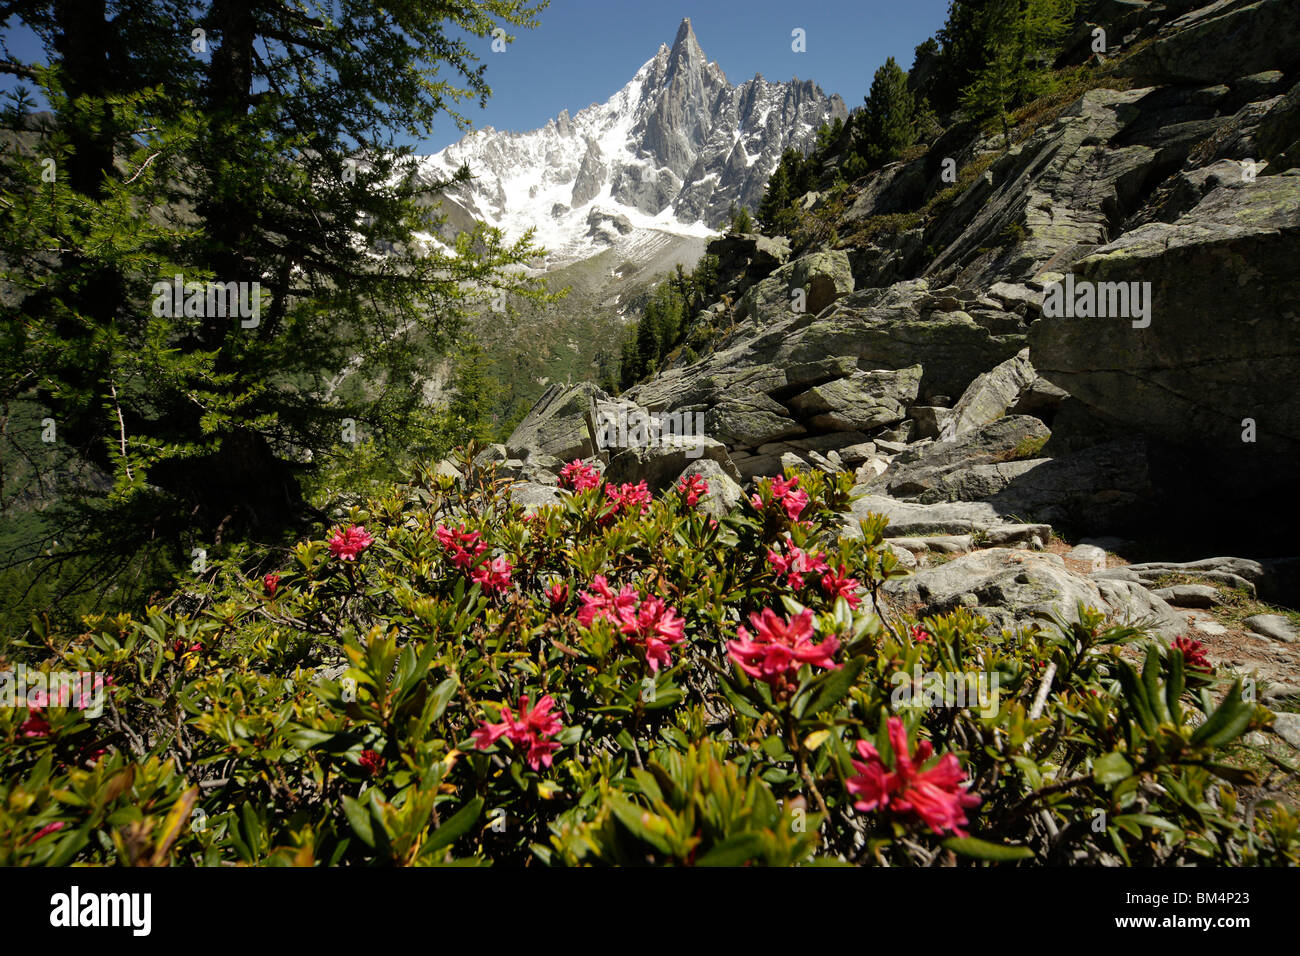 rhododendron and the Aiguille du Dru, a double-peaked mountain in the Mont Blanc Massif in Chamonix-Mont-Blanc, - Stock Image